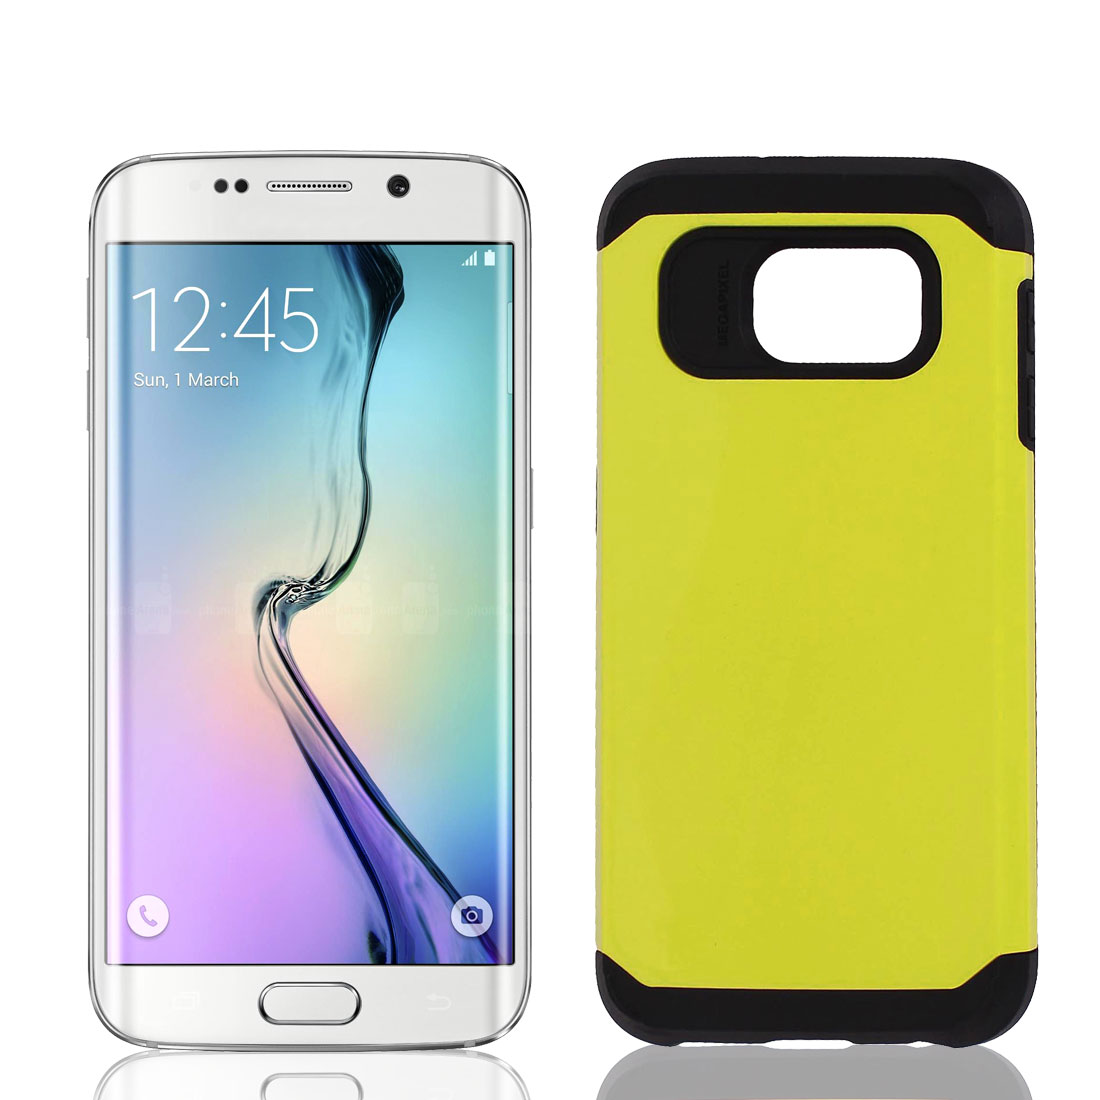 Shockproof 2 Layer Hard Bumper Protective Case Cover Yellow for Galaxy S6 i9200